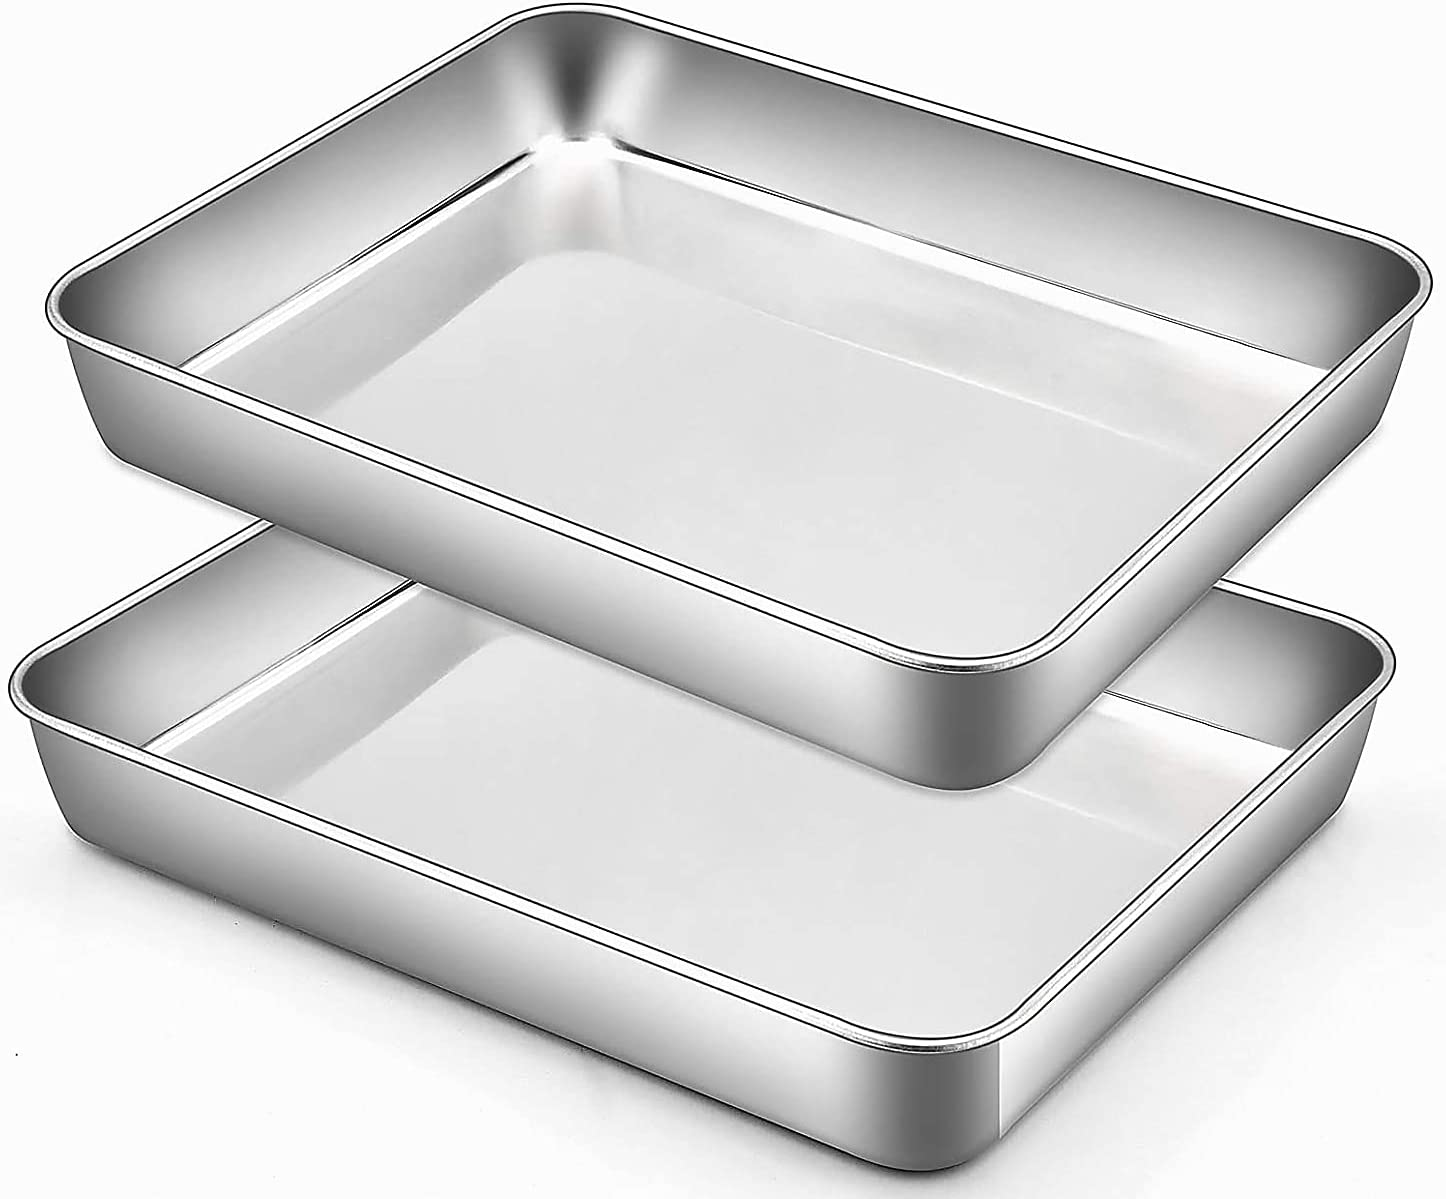 Baking Sheet, Sheet Pan, Cookie Sheet, Heavy Duty Stainless Steel Baking Pans, Toaster Oven Pan, Jelly Roll Pan, Barbeque Grill Pan, Deep Edge, Superior Mirror Finish, Dishwasher Safe -2 Pieces